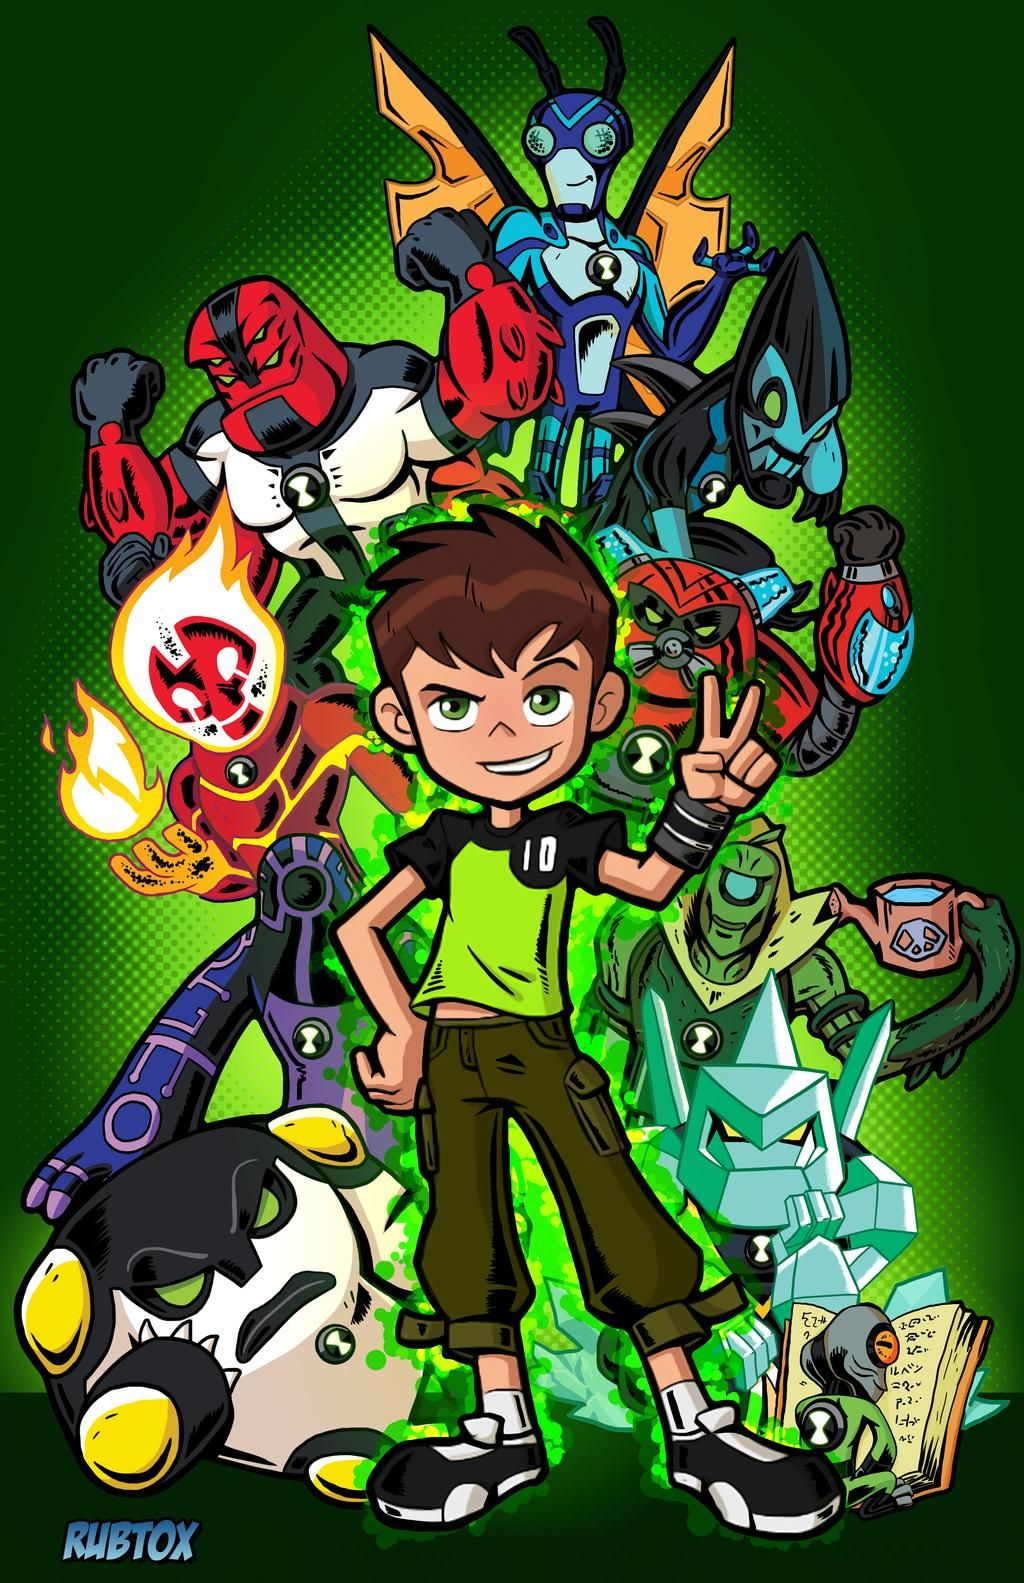 Ben 10 Reboot By Rubtox On Deviantart Ben 10 Birthday Ben 10 Ben 10 Birthday Party